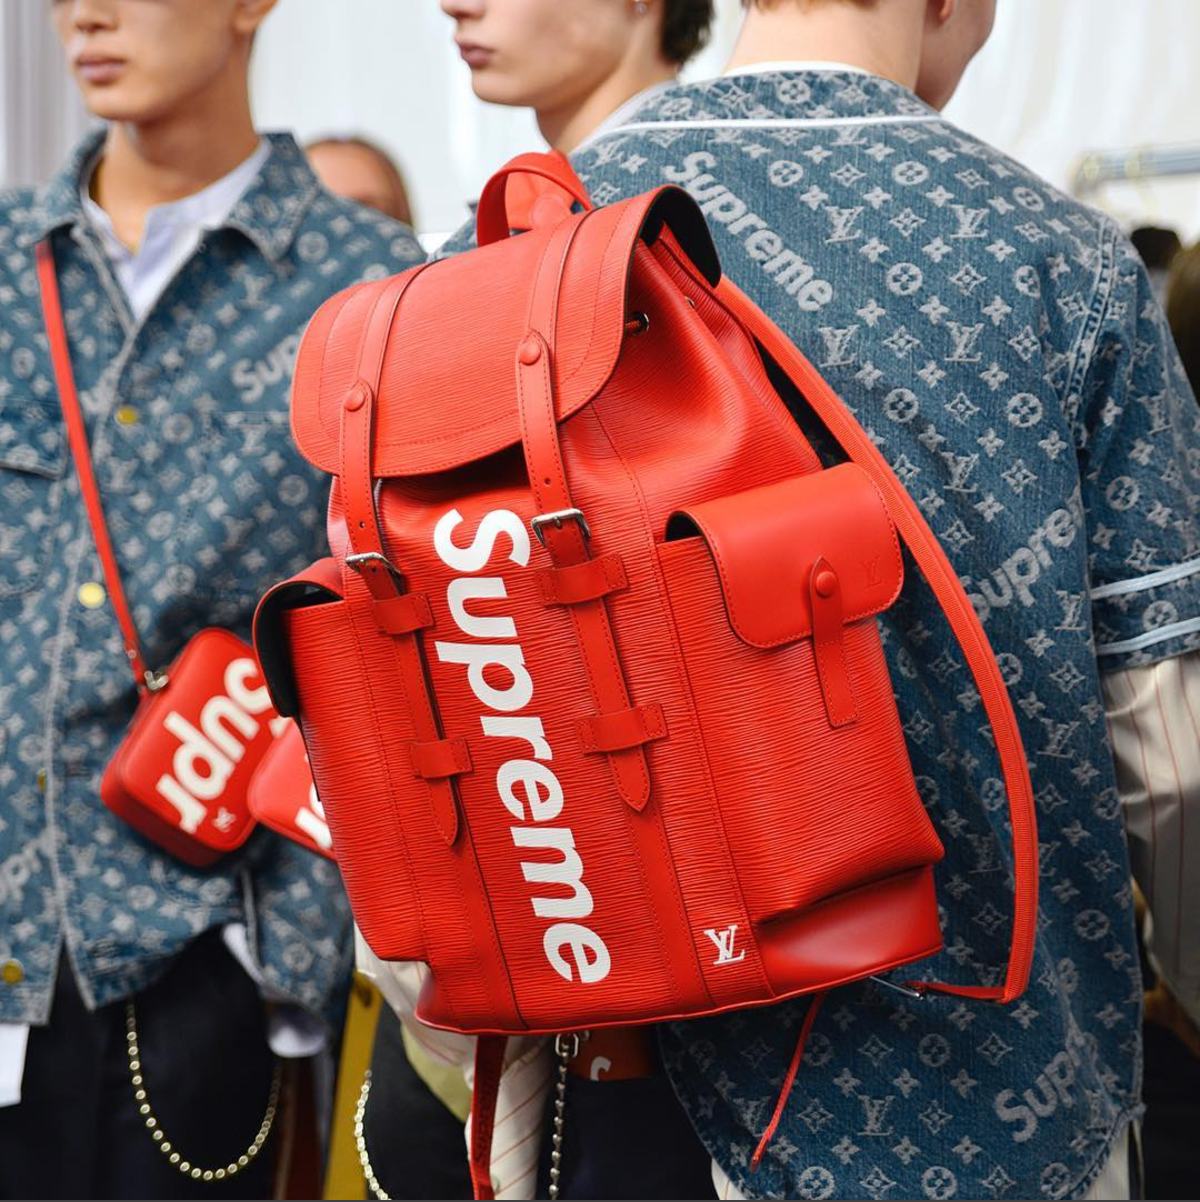 Supreme Was Not Bought By LVMH For $500 Million